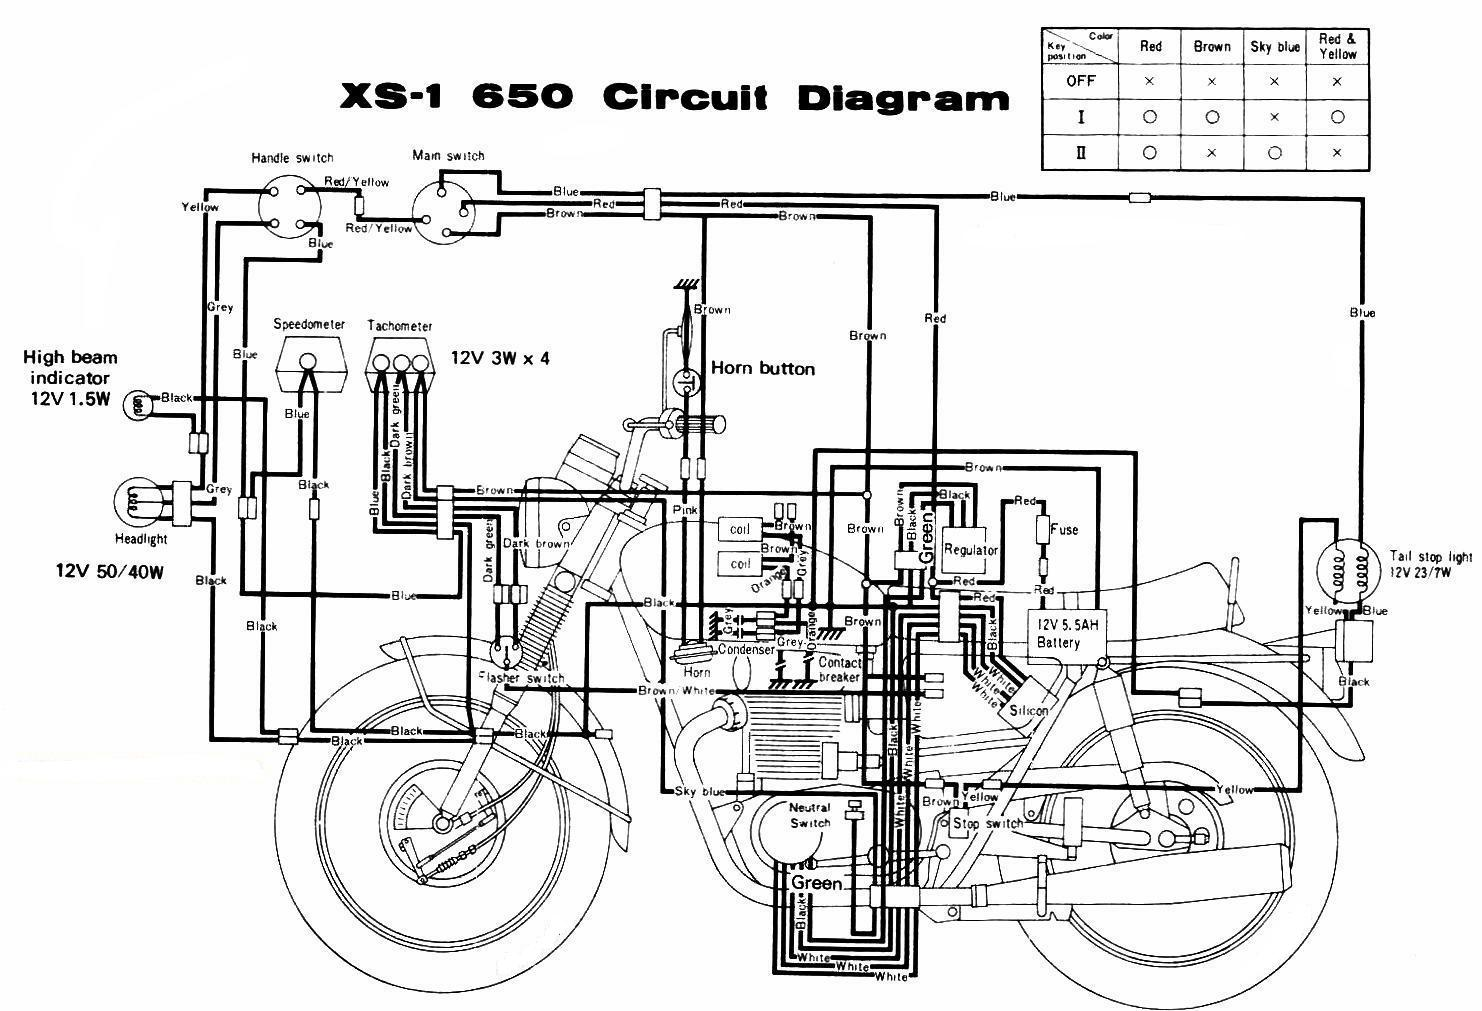 Wiring diagrams 1970 xs1 page 1 swarovskicordoba Images